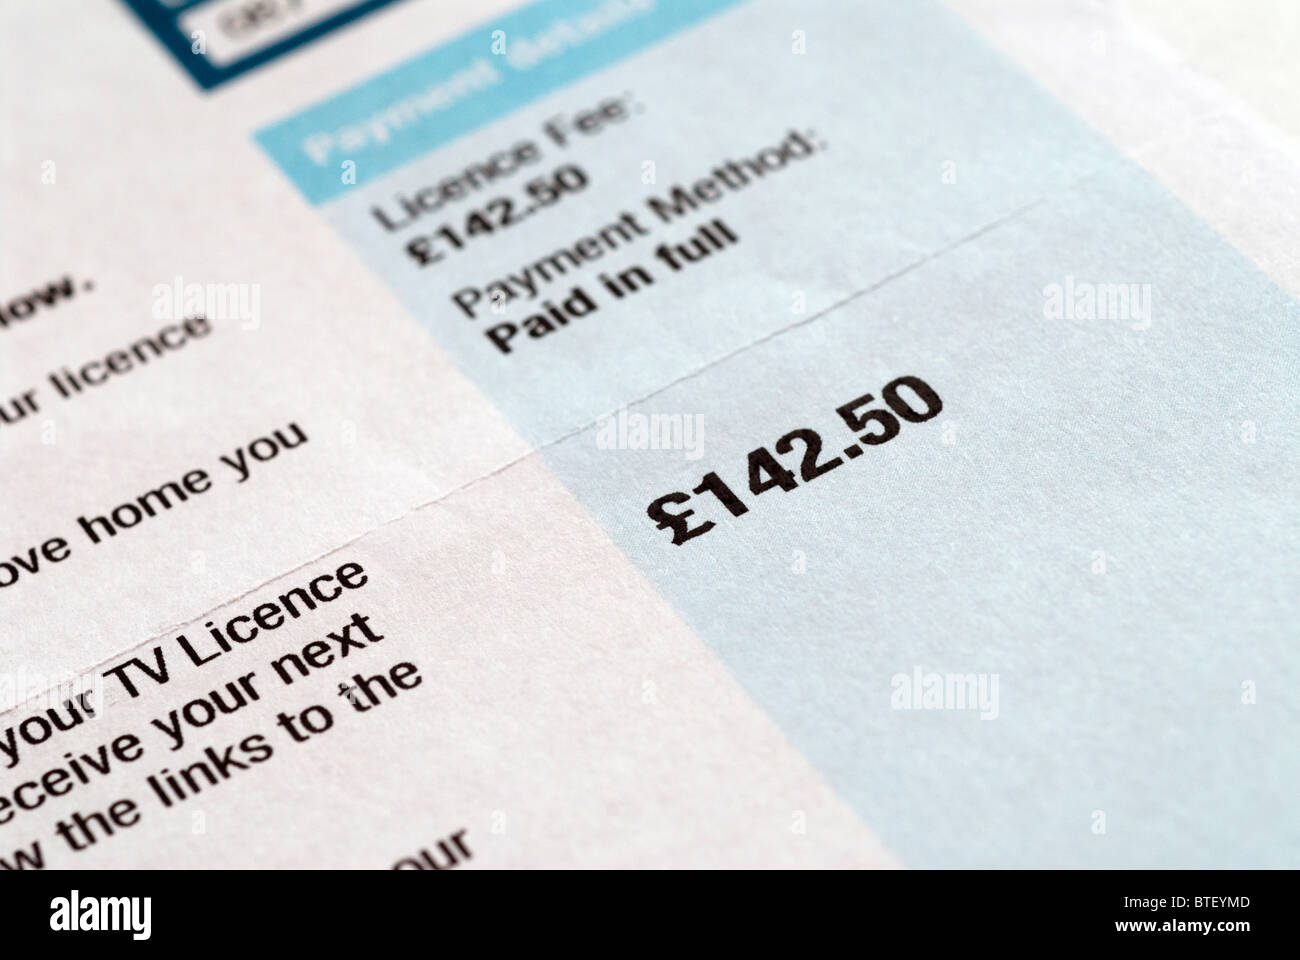 TV Licence - Stock Image